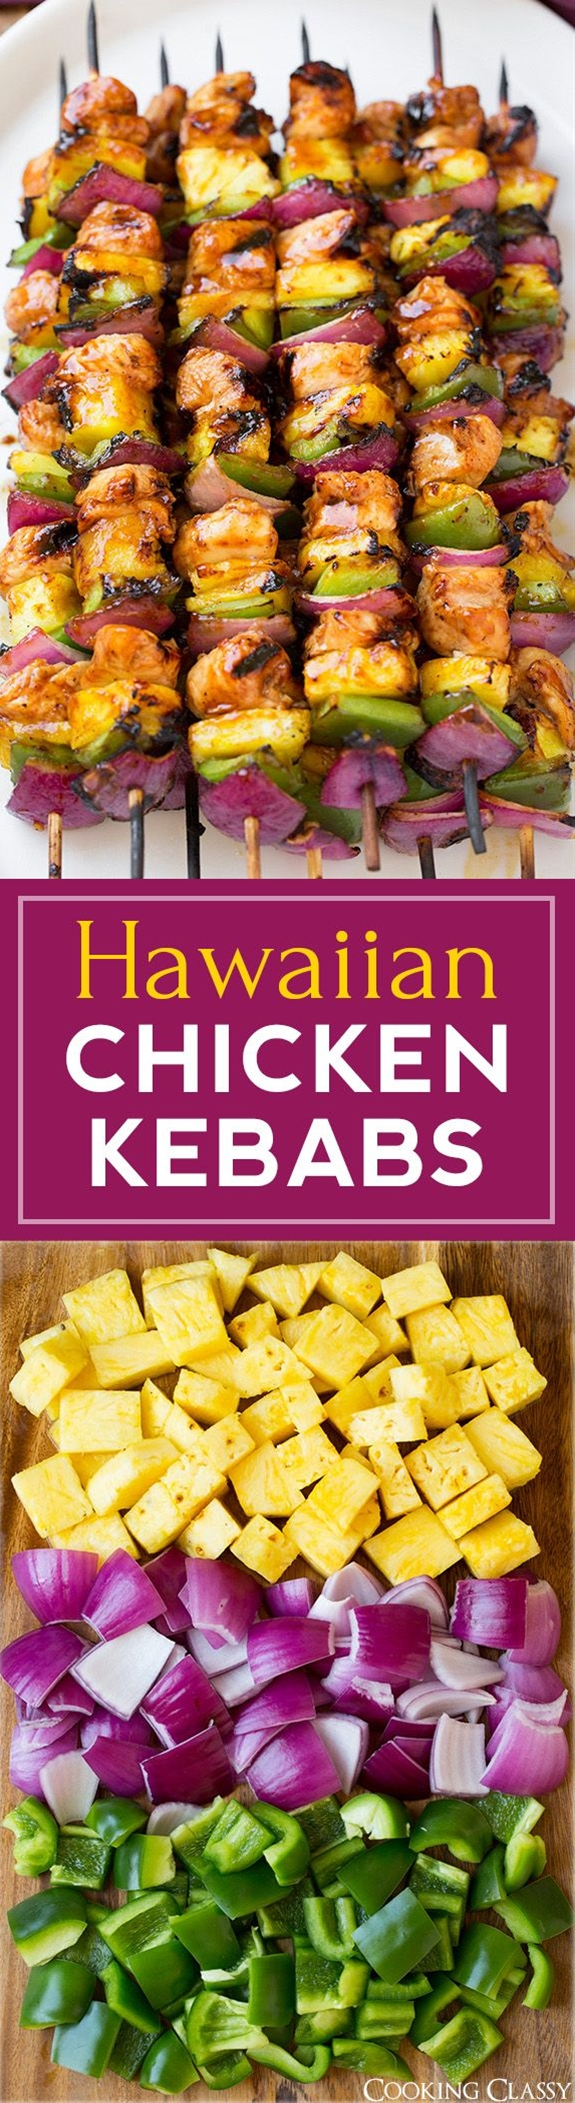 These are incredibly DELICIOUS! My husband and I loved them! Perfect for a summer meal.\n\n